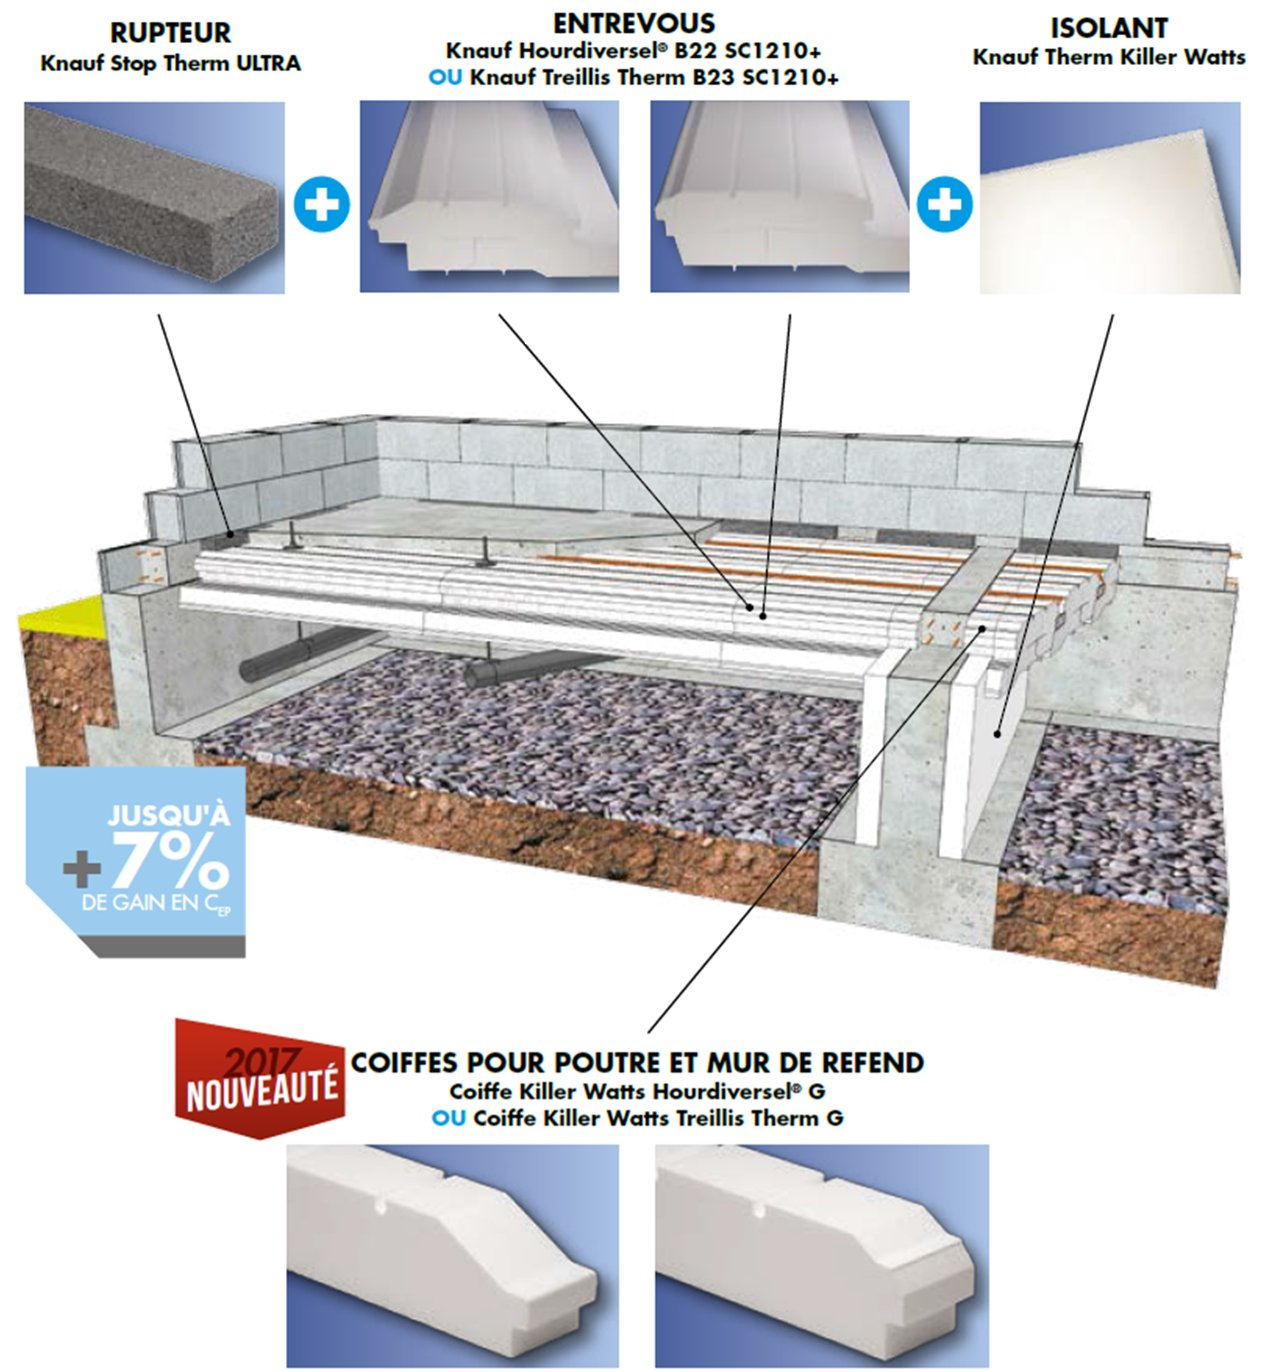 SOLUTION KILLER WATTS BY KNAUF AVEC MUR DE REFEND